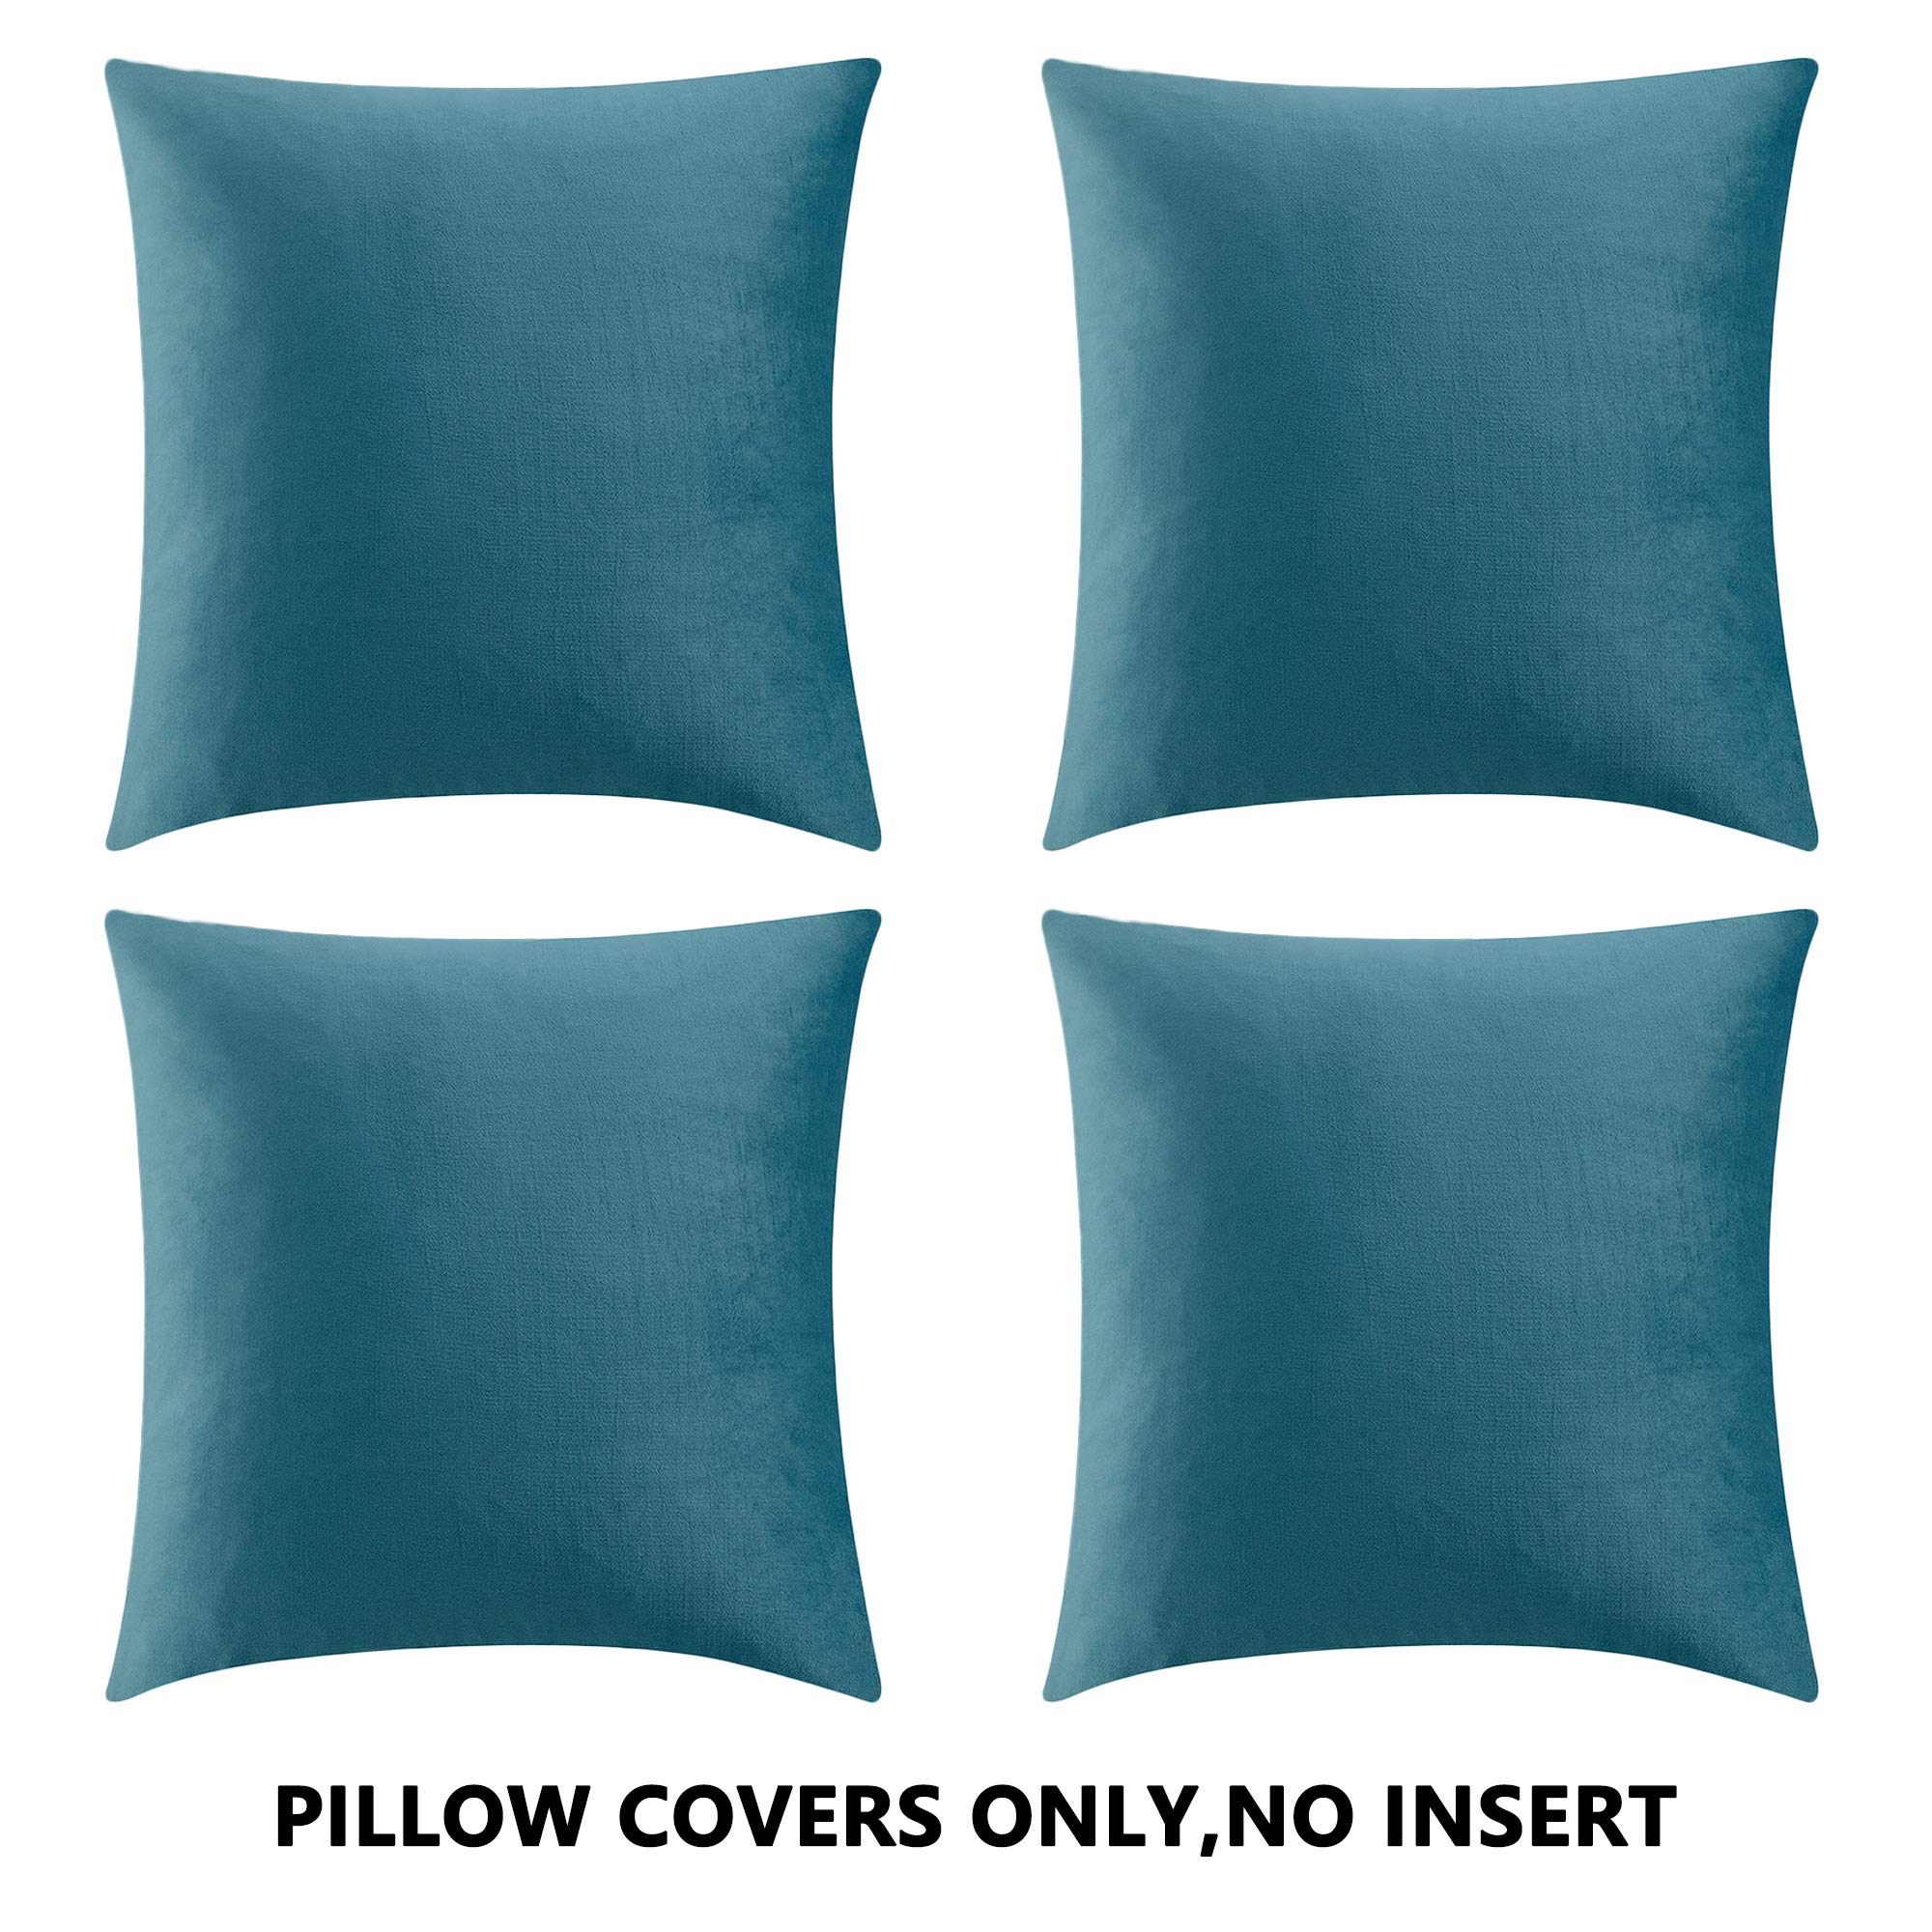 pillow cover teal blue white decorative